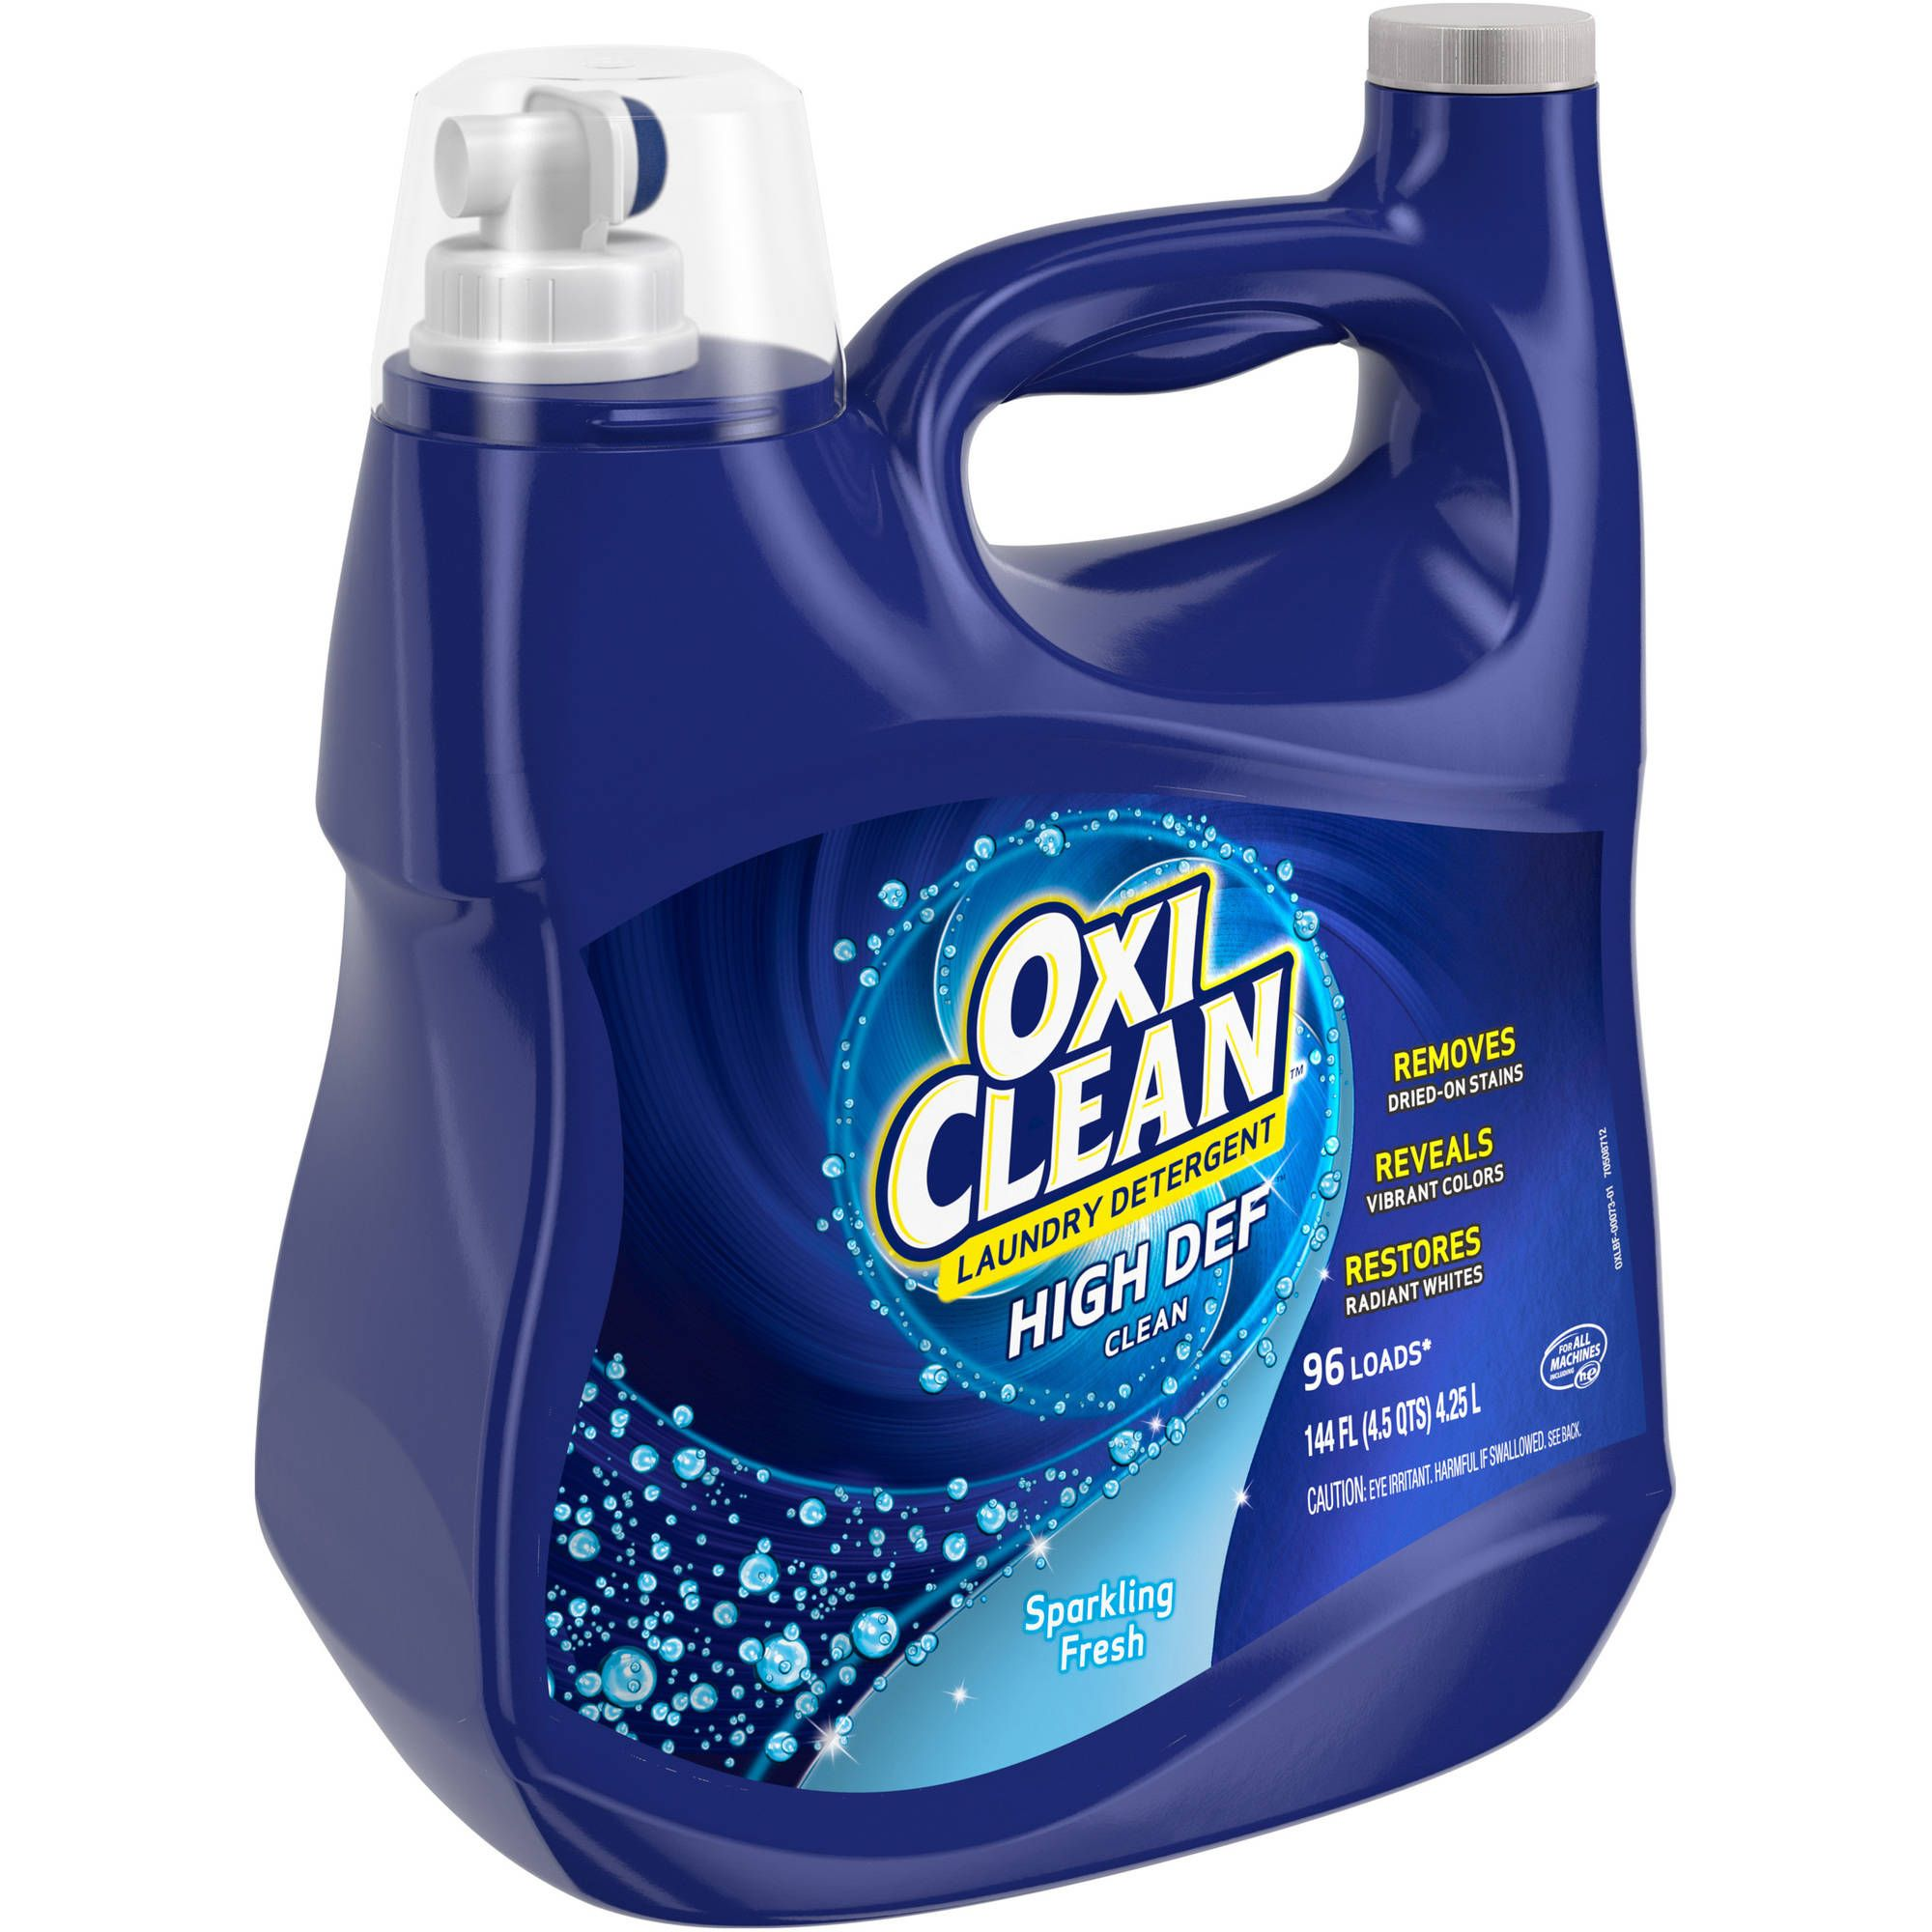 Oxi Clean Sparkling Fresh Laundry Detergent Liquid Laundry Soap